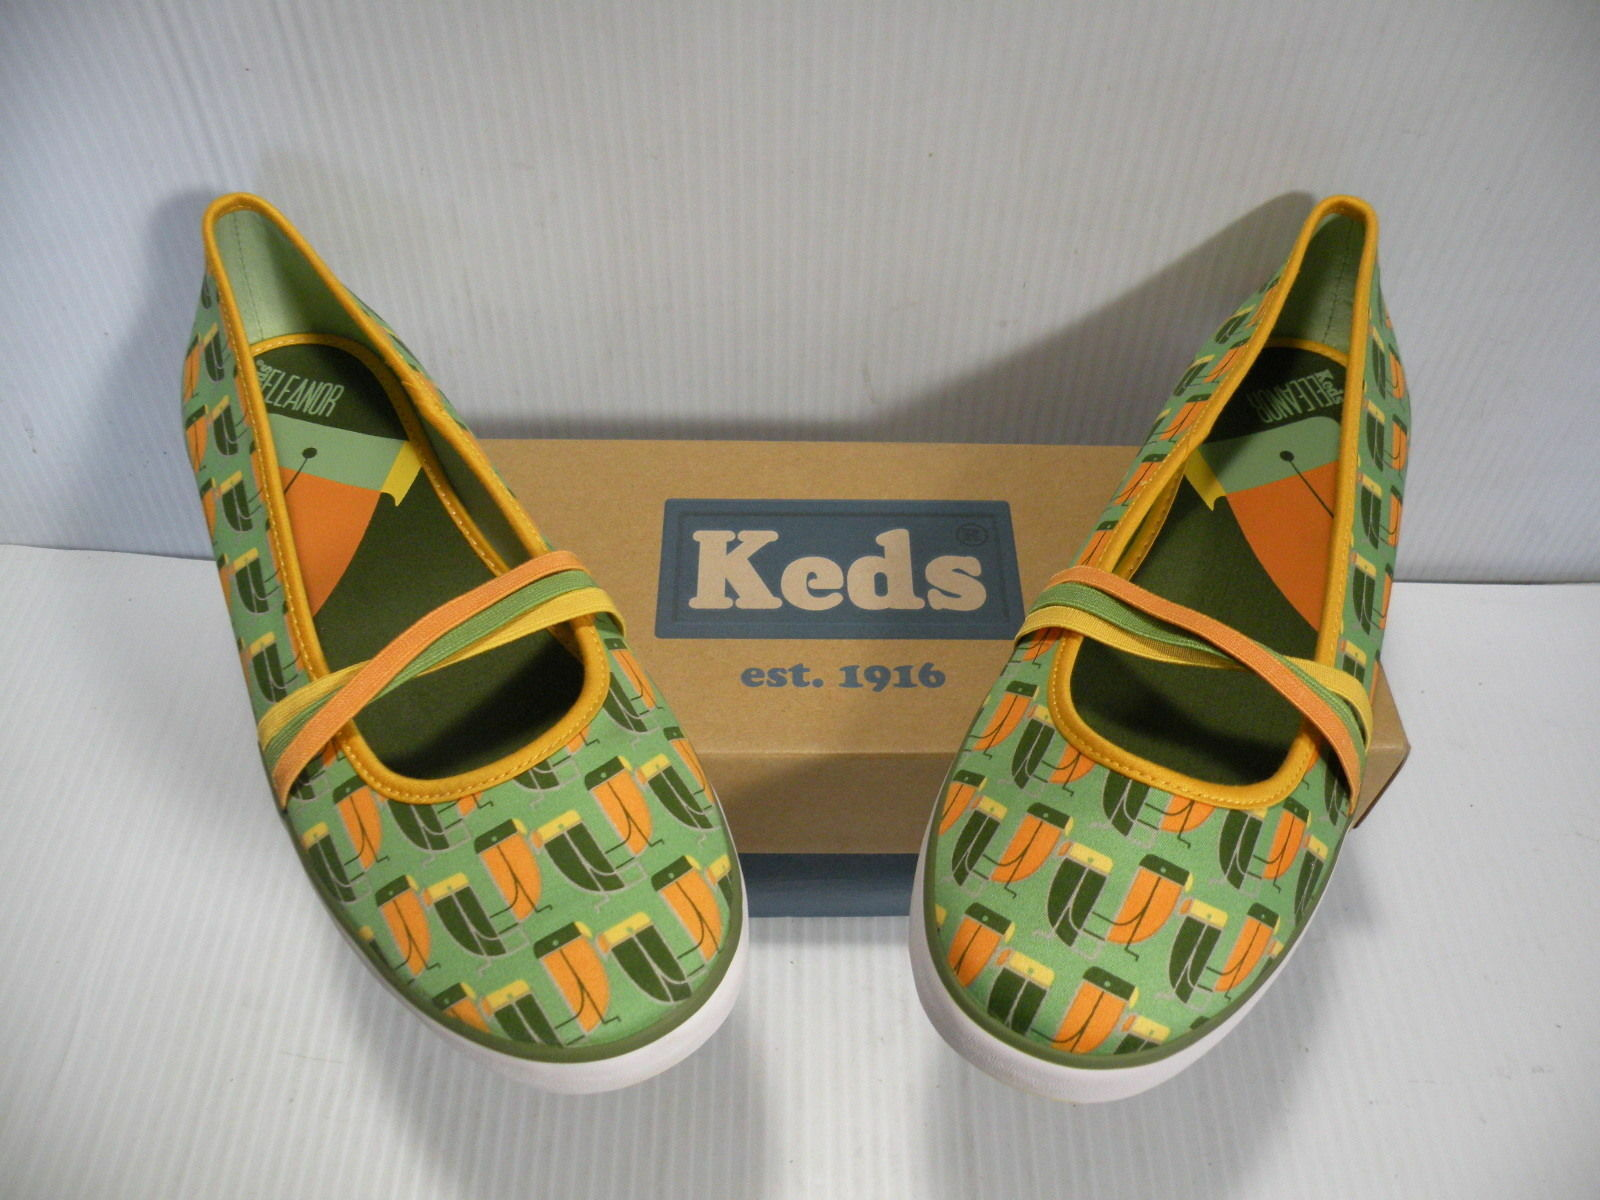 KEDS ELEANOR LOW WOMEN SHOES SHOES SHOES GREEN PARred WF19848 SIZE 10 NEW 74a6af